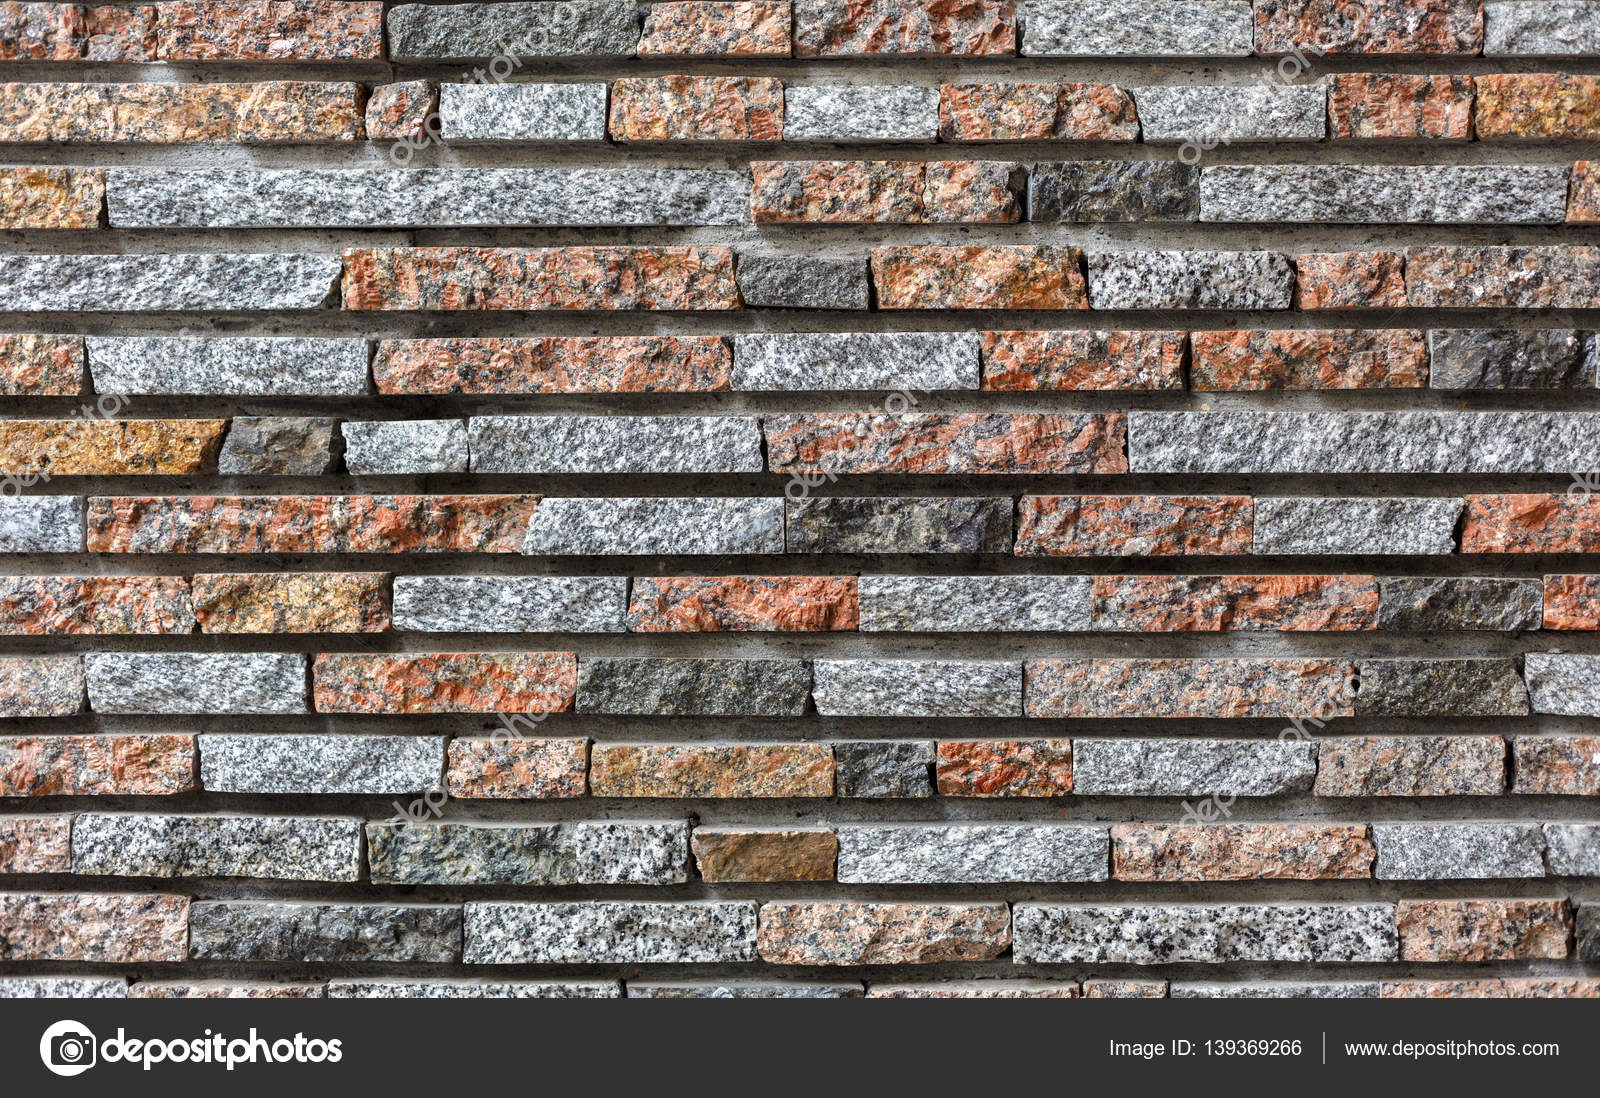 Prepossessing 40 Decorative Brick Wall Design Inspiration